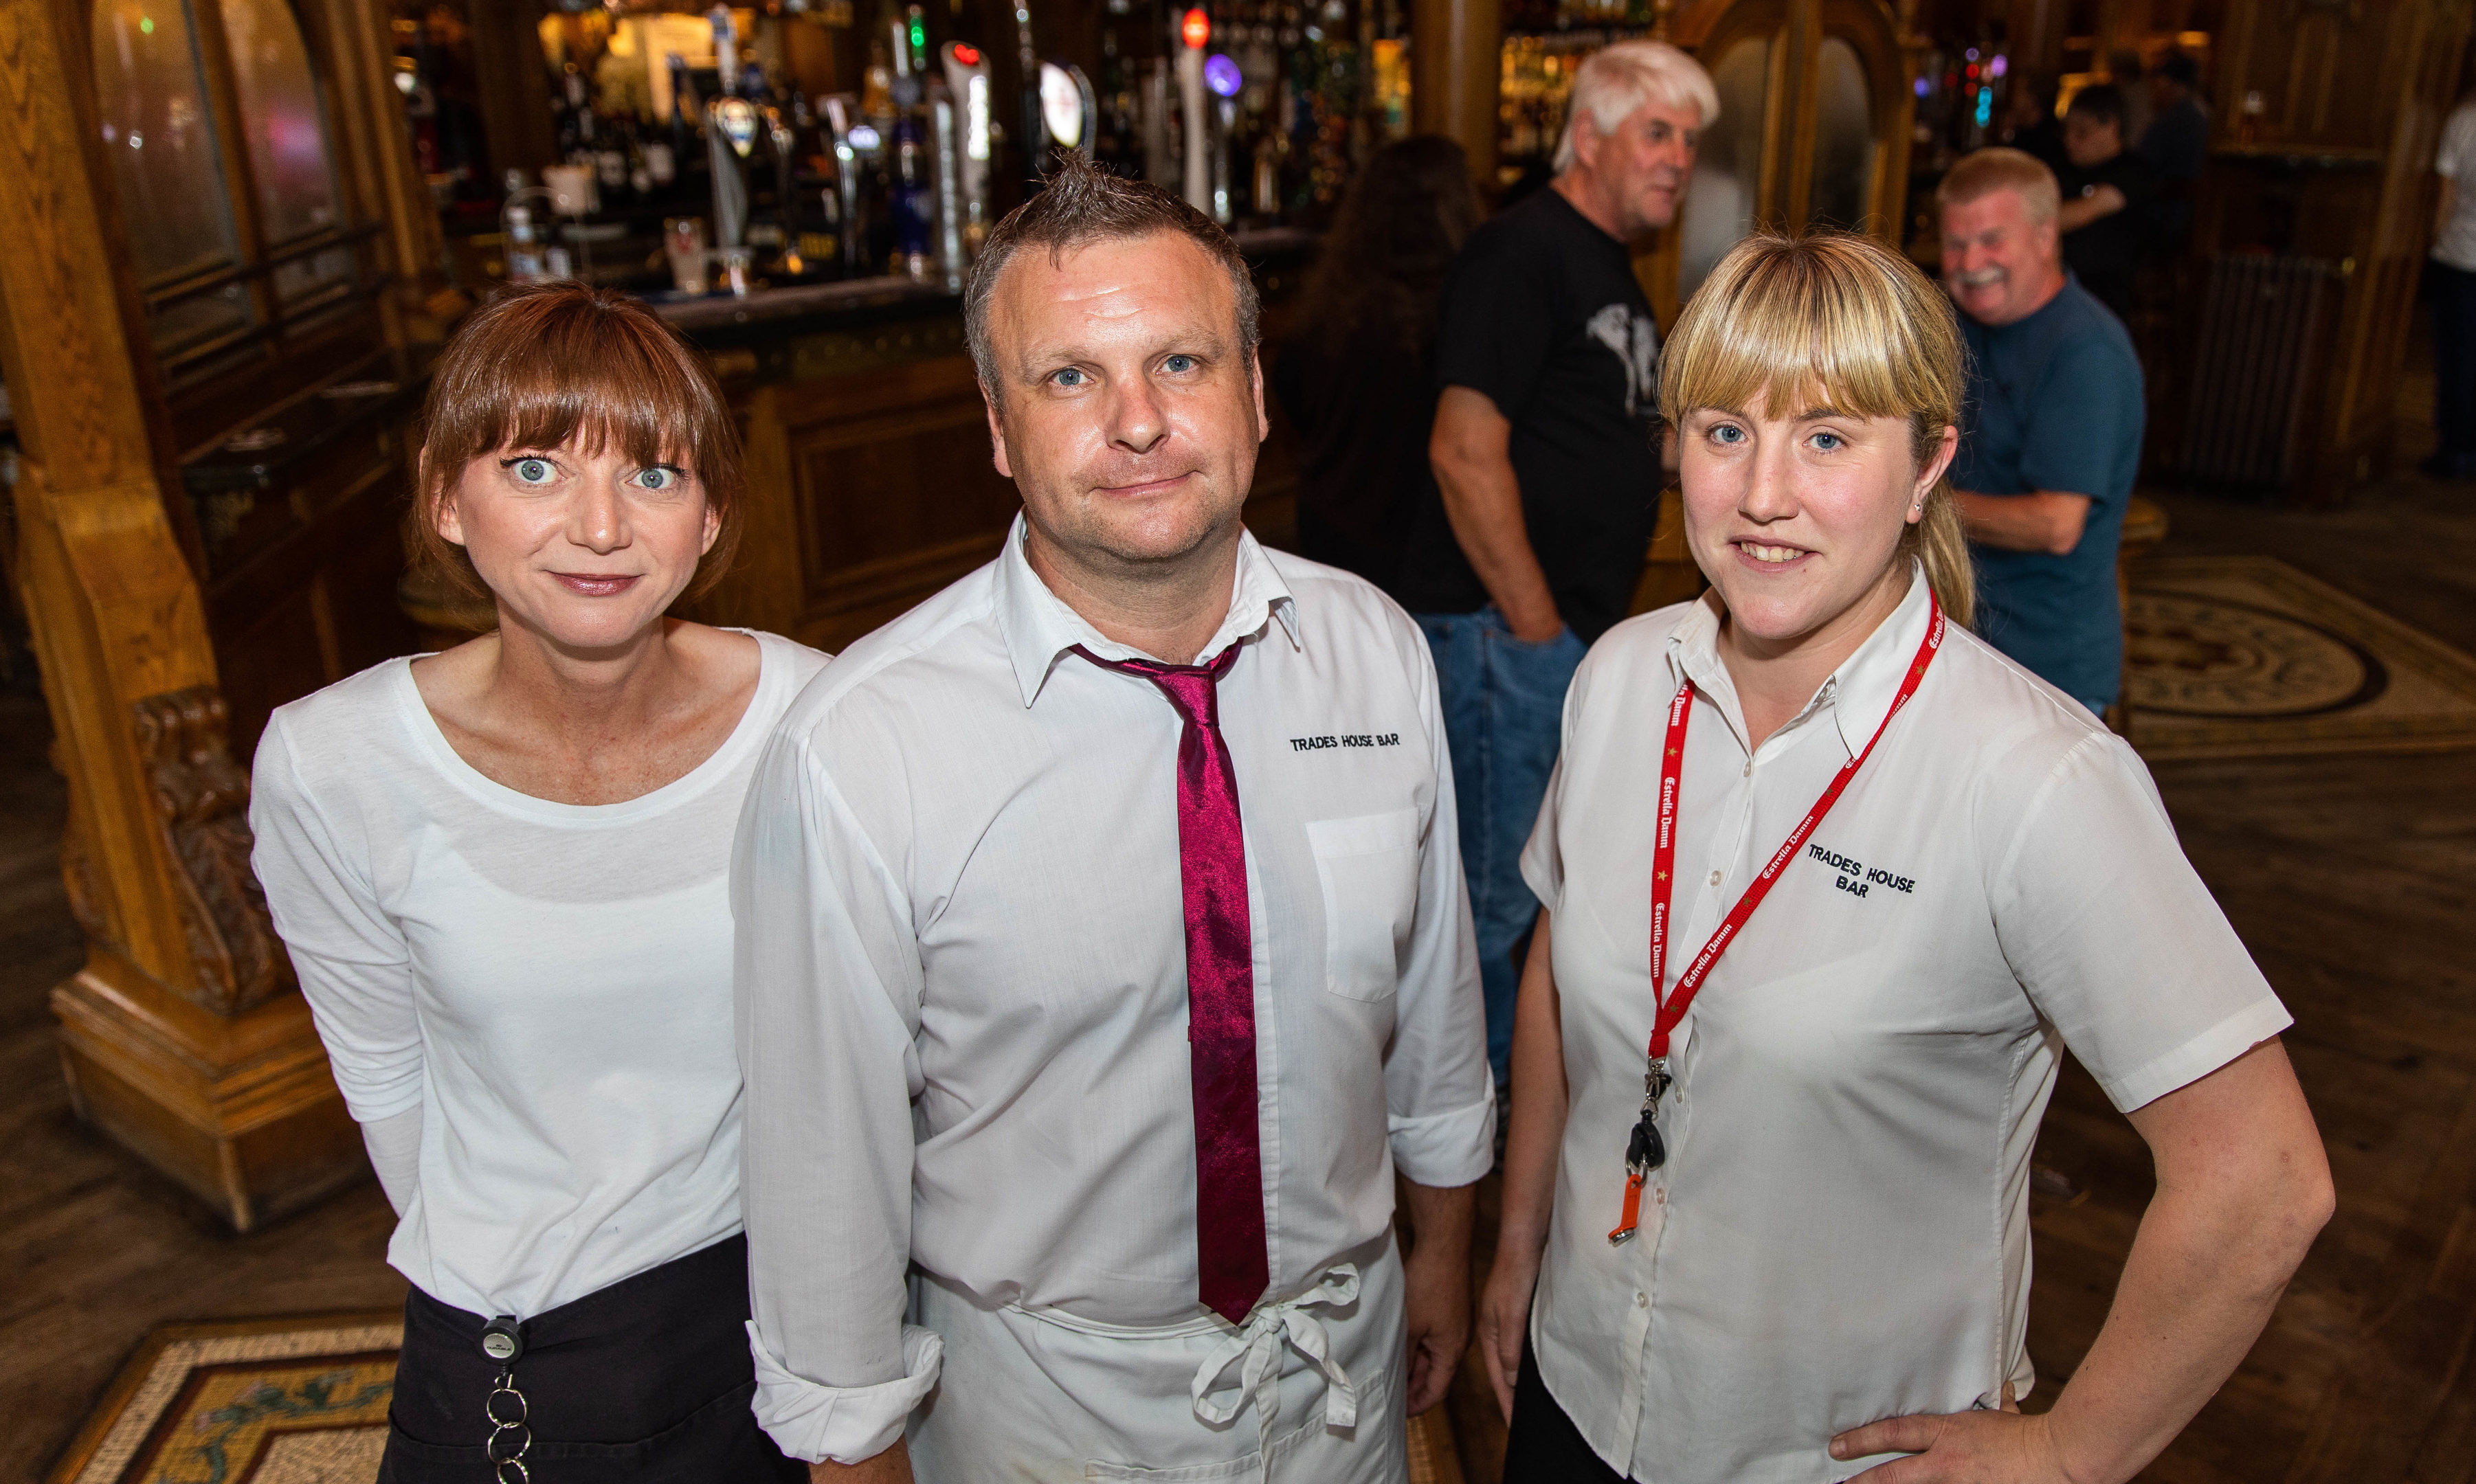 Trades bar staff, Paula Chevalier, Billy Meek & assistant manager Jackie Adam.